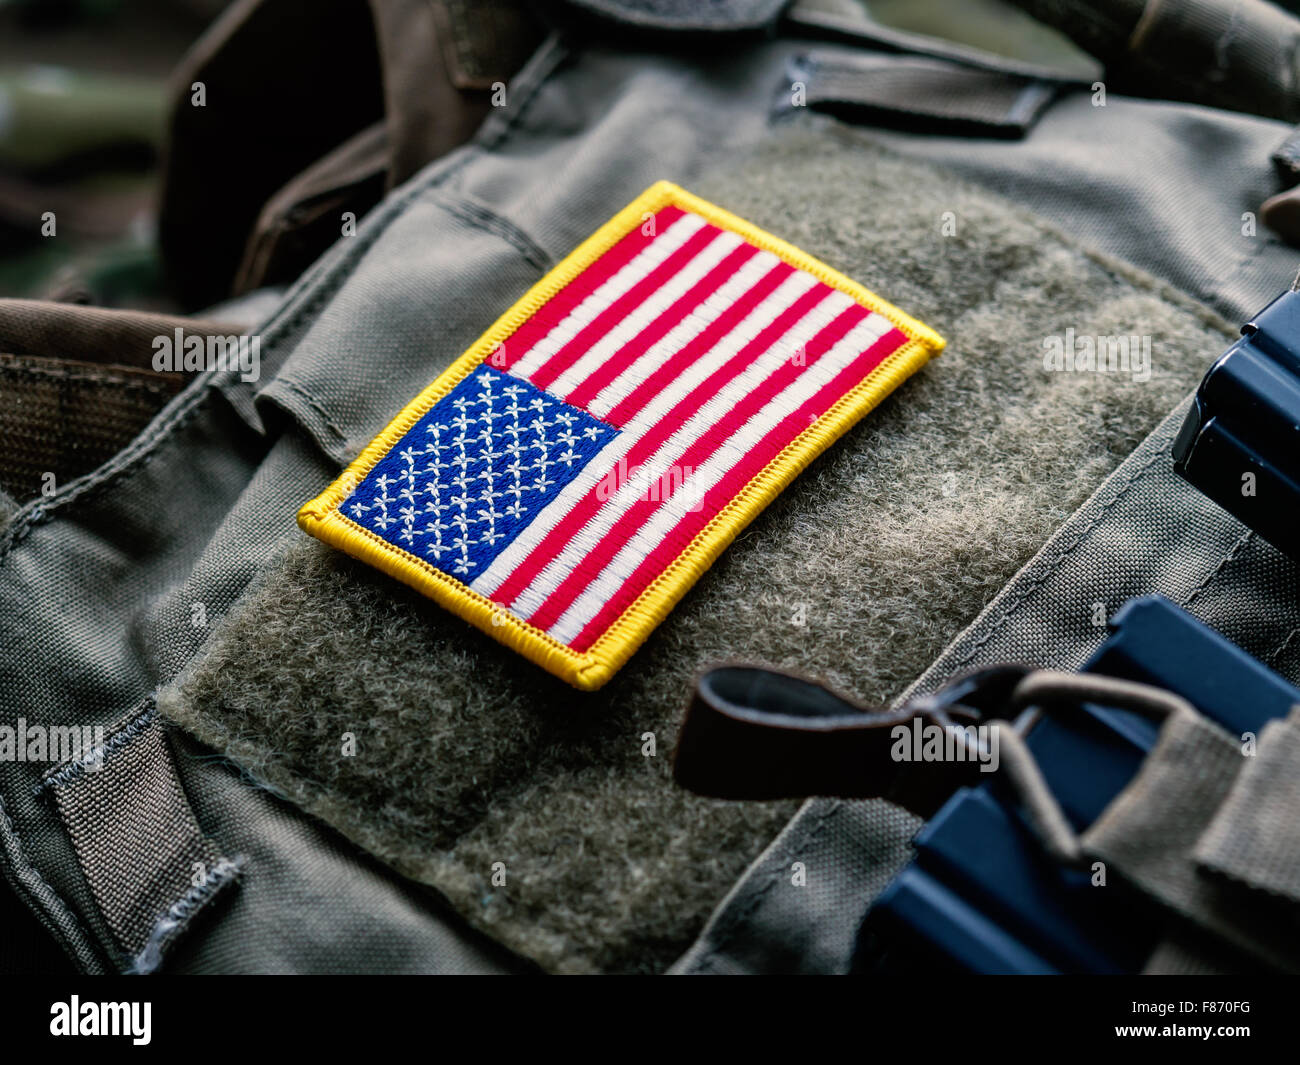 United States flag on the tactical bulletproof vest, selective focus - Stock Image